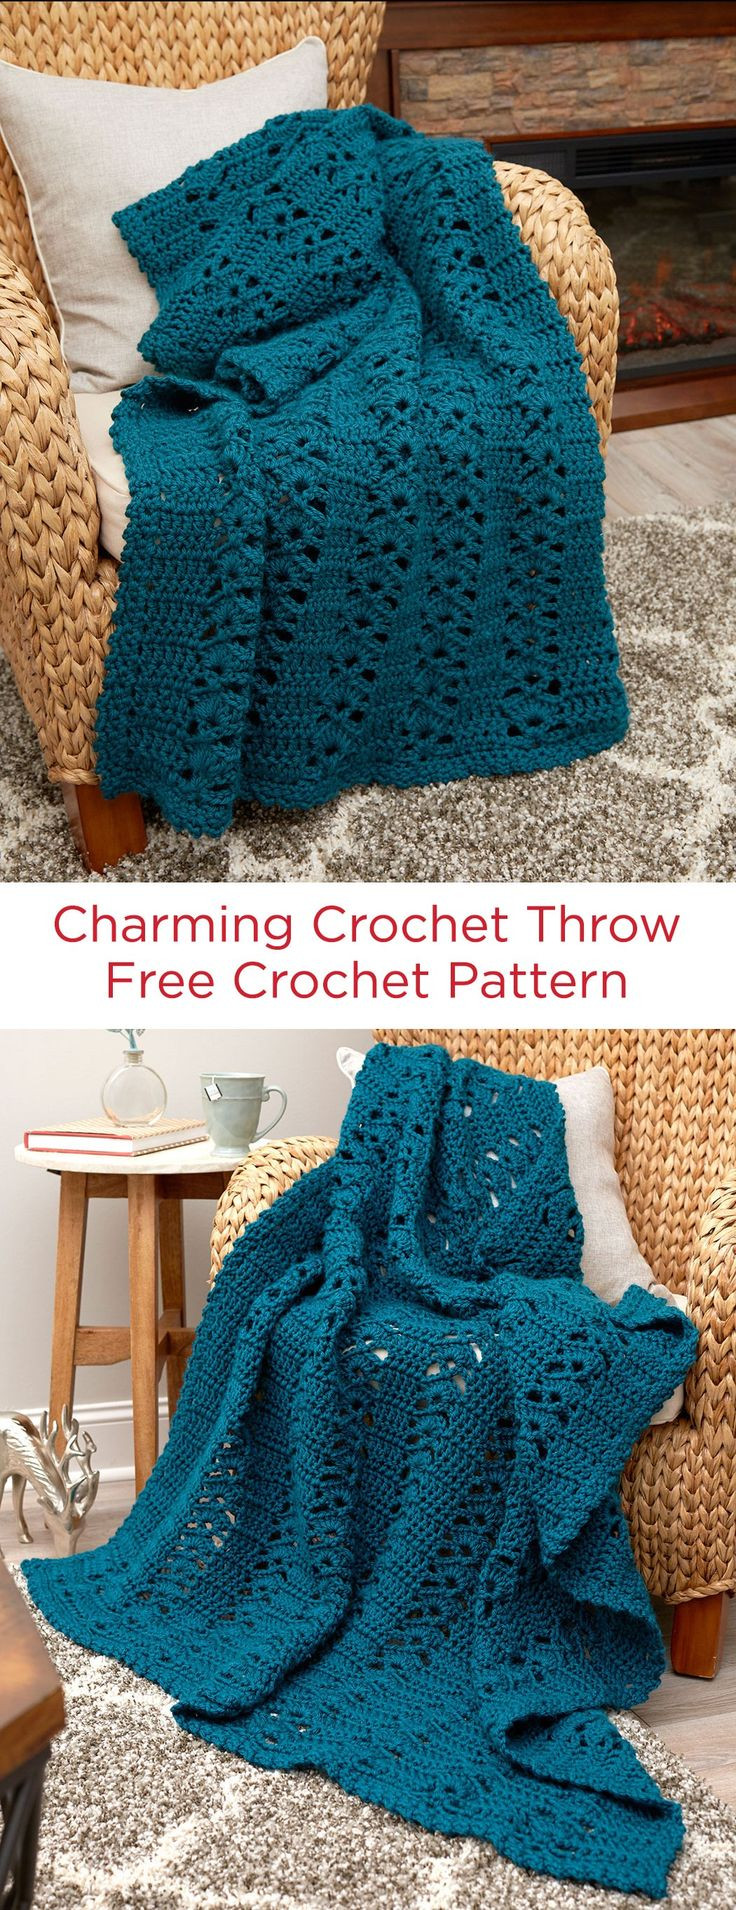 Free Afghan Patterns Luxury 25 Bästa Afghan Crochet Patterns Idéerna På Pinterest Of Perfect 41 Ideas Free Afghan Patterns